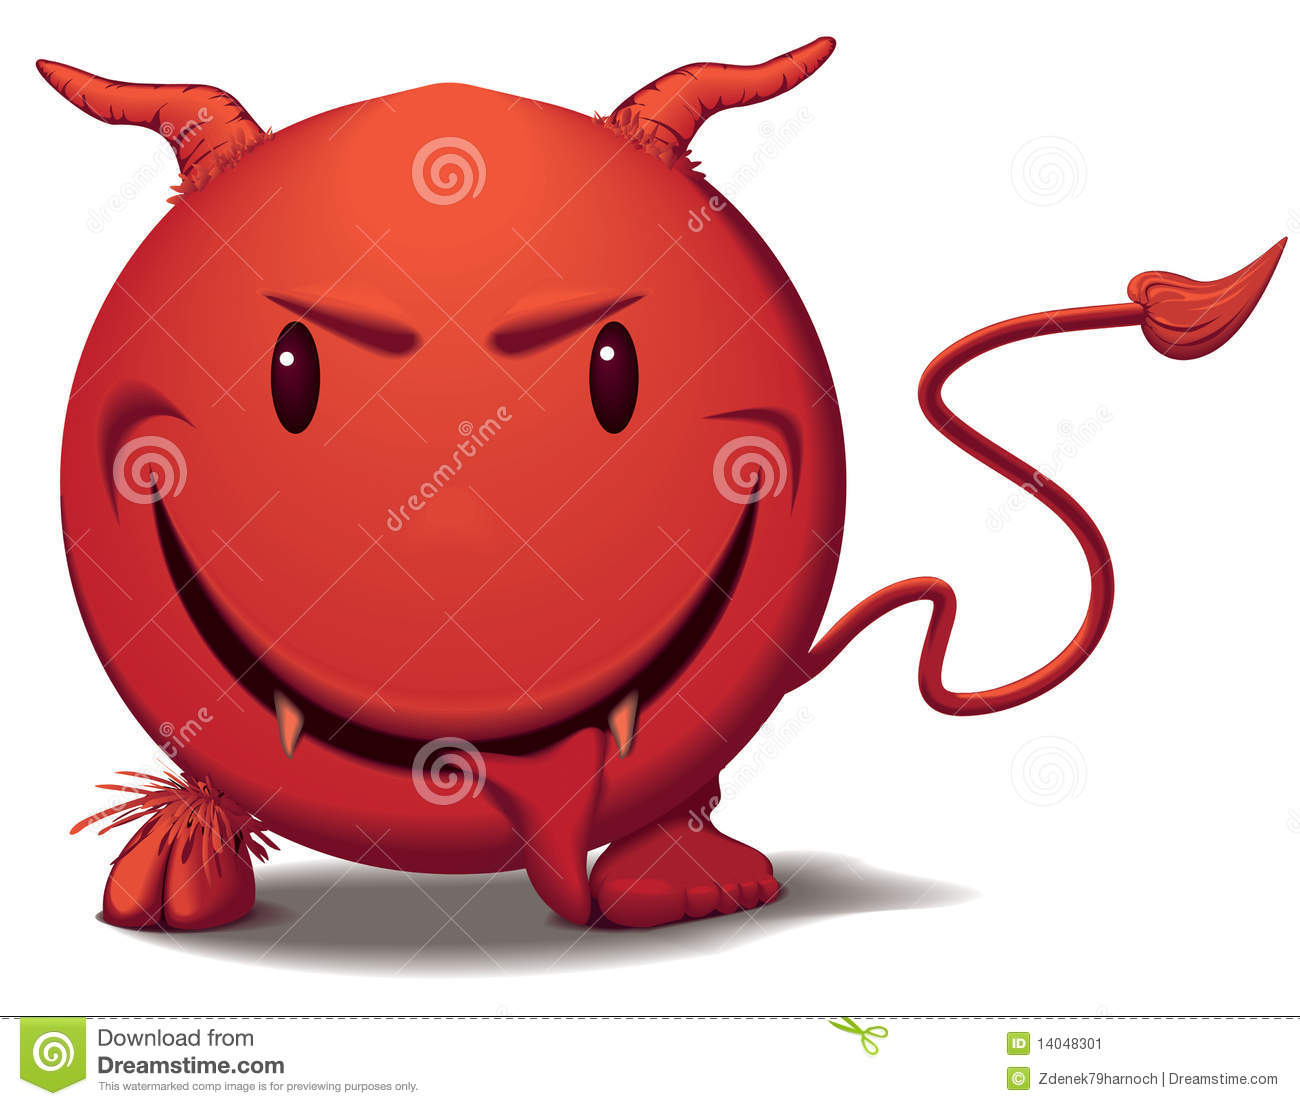 Devil Smile In Red Stock Image - Image: 14048301